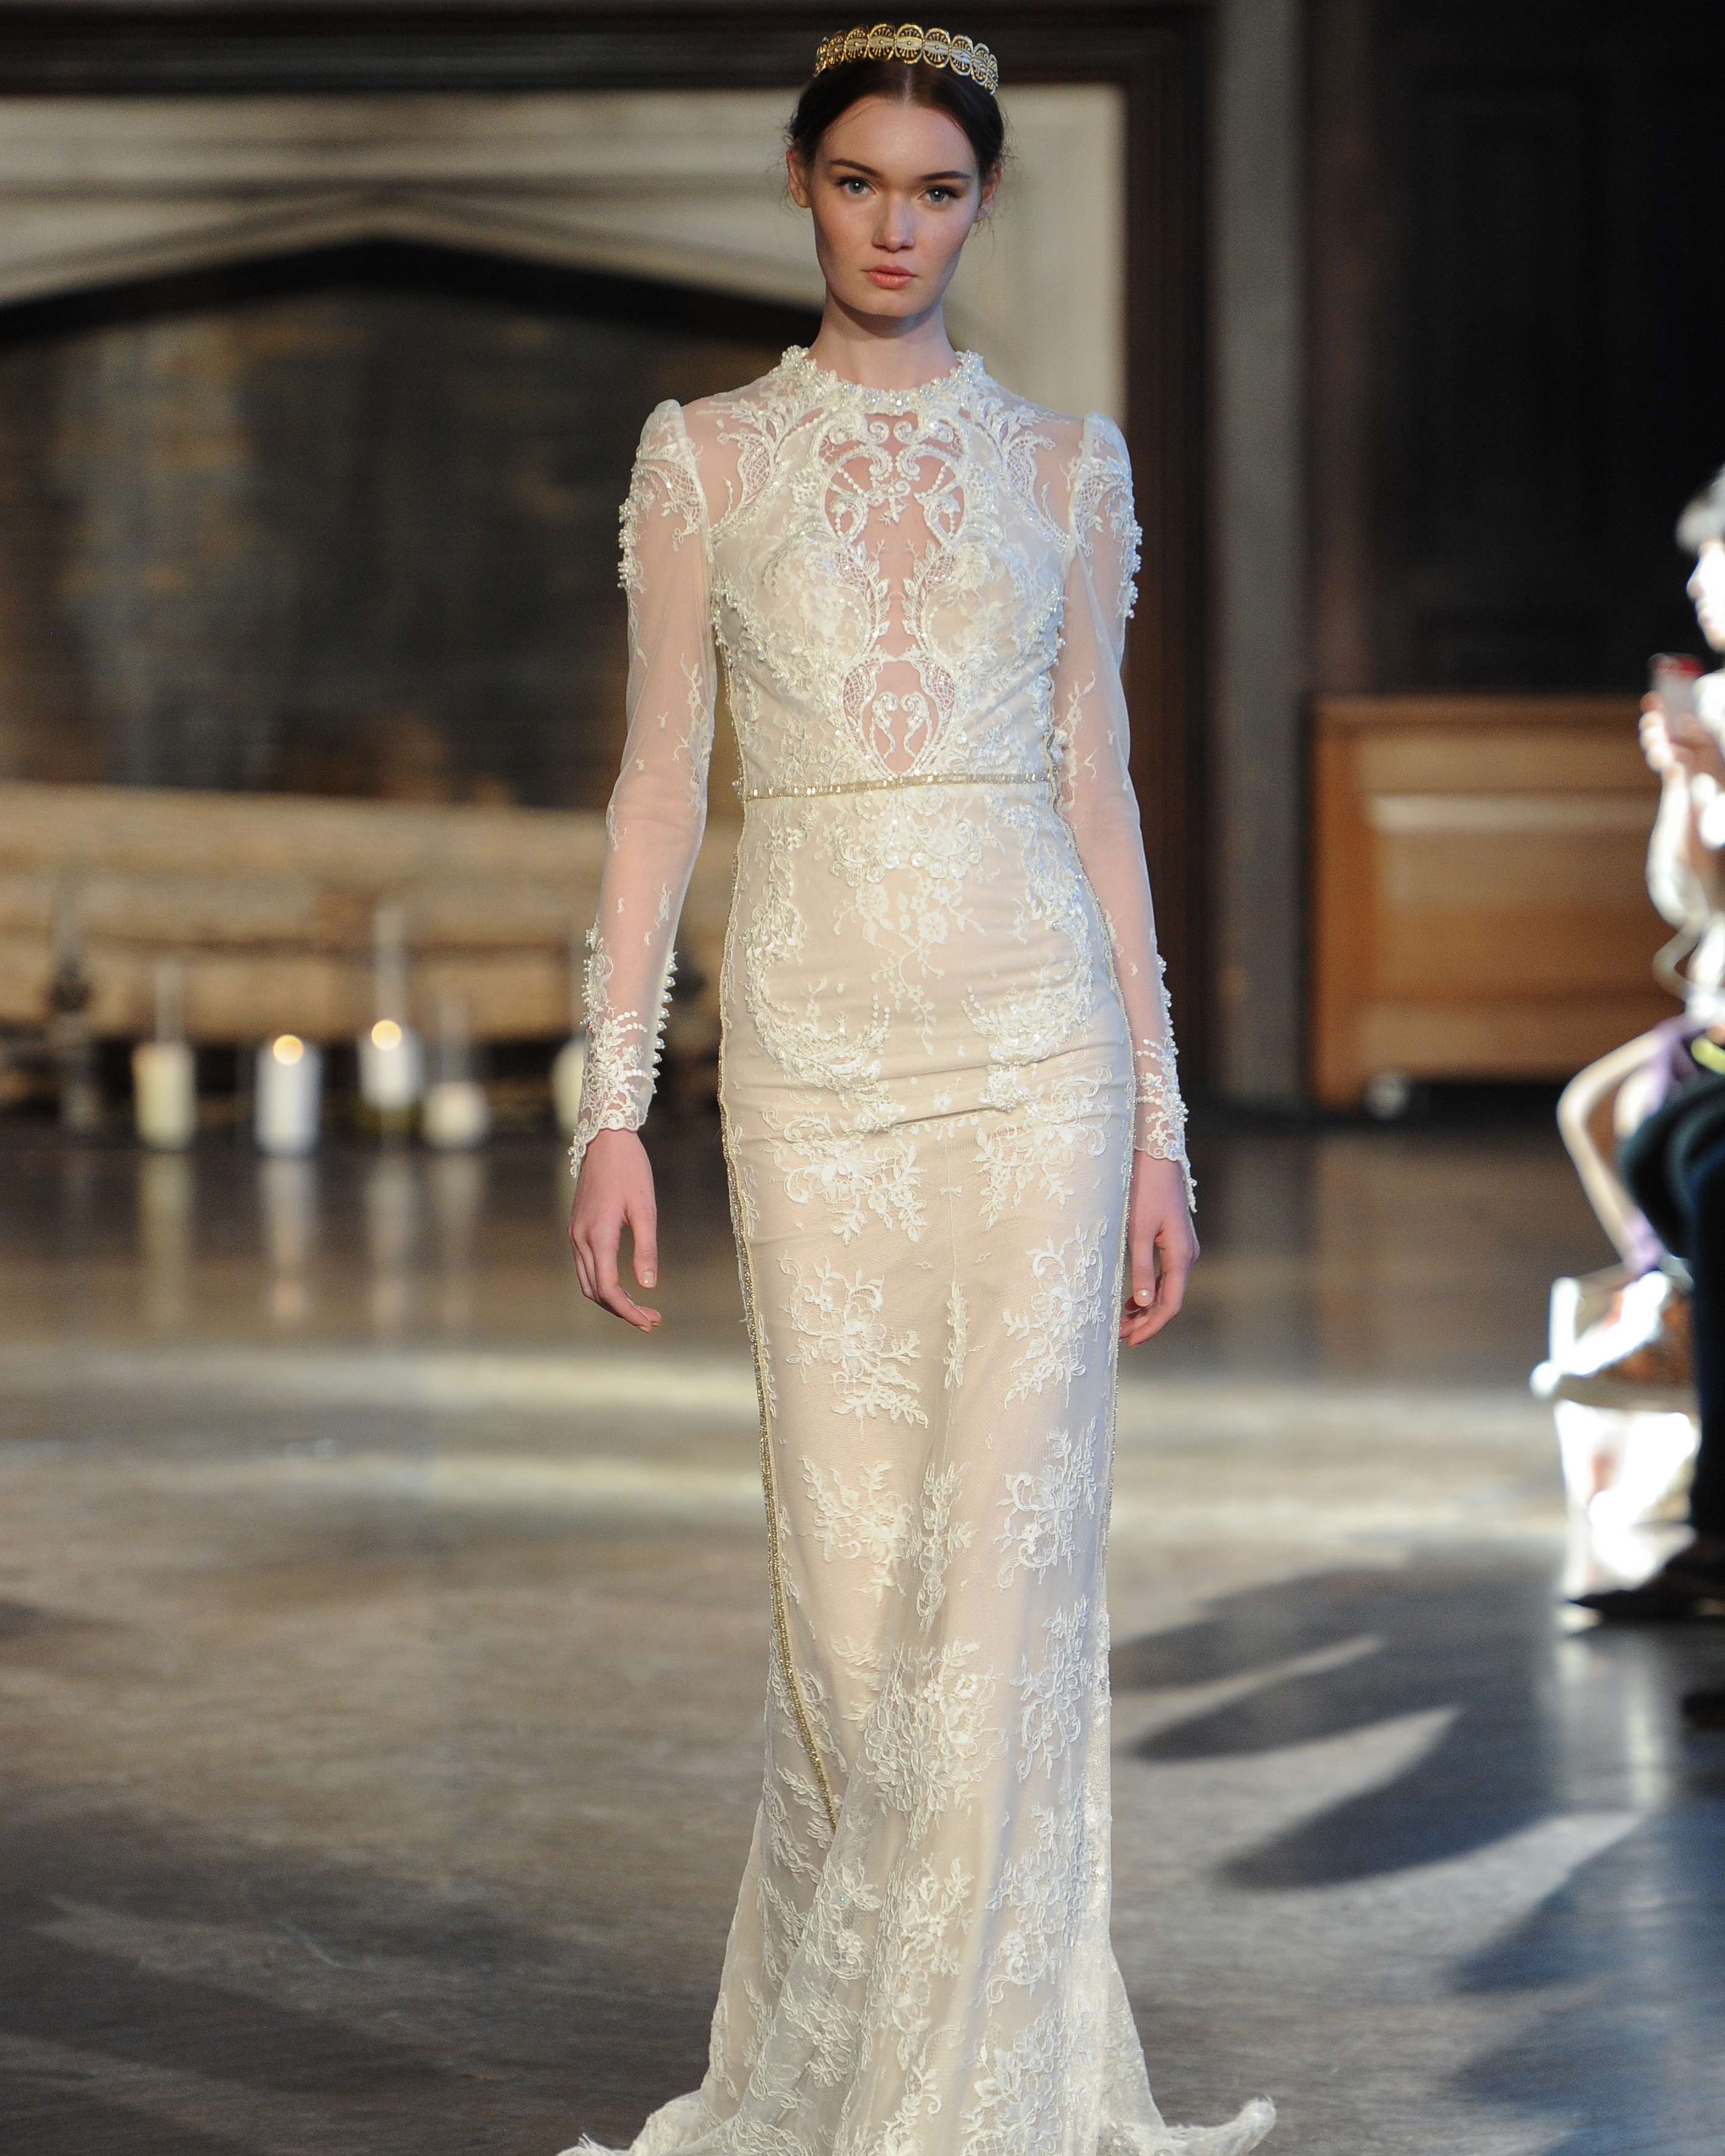 Inbal Dror Fall 2015 Bridal Show